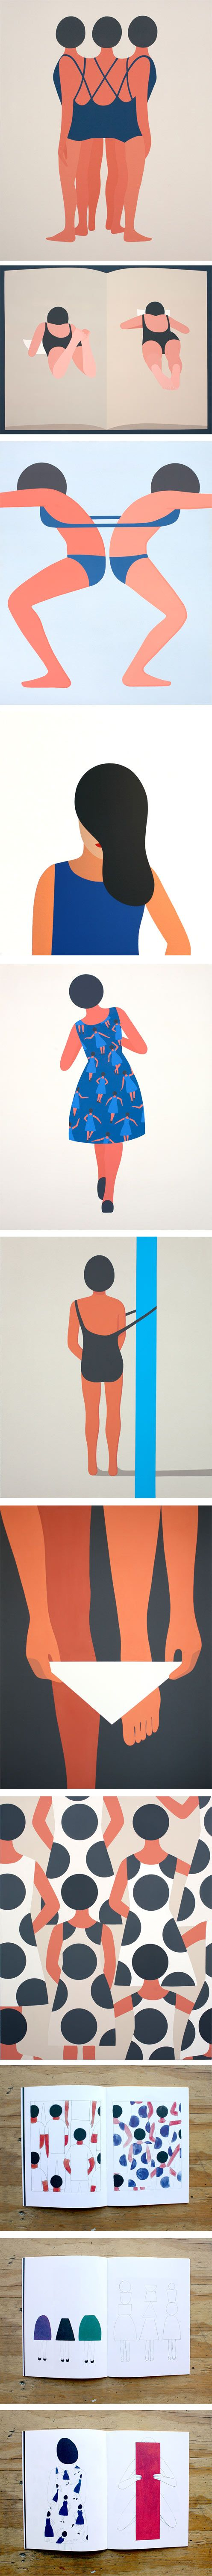 Geoff McFetridge on the LPP blog. All images via the artist.